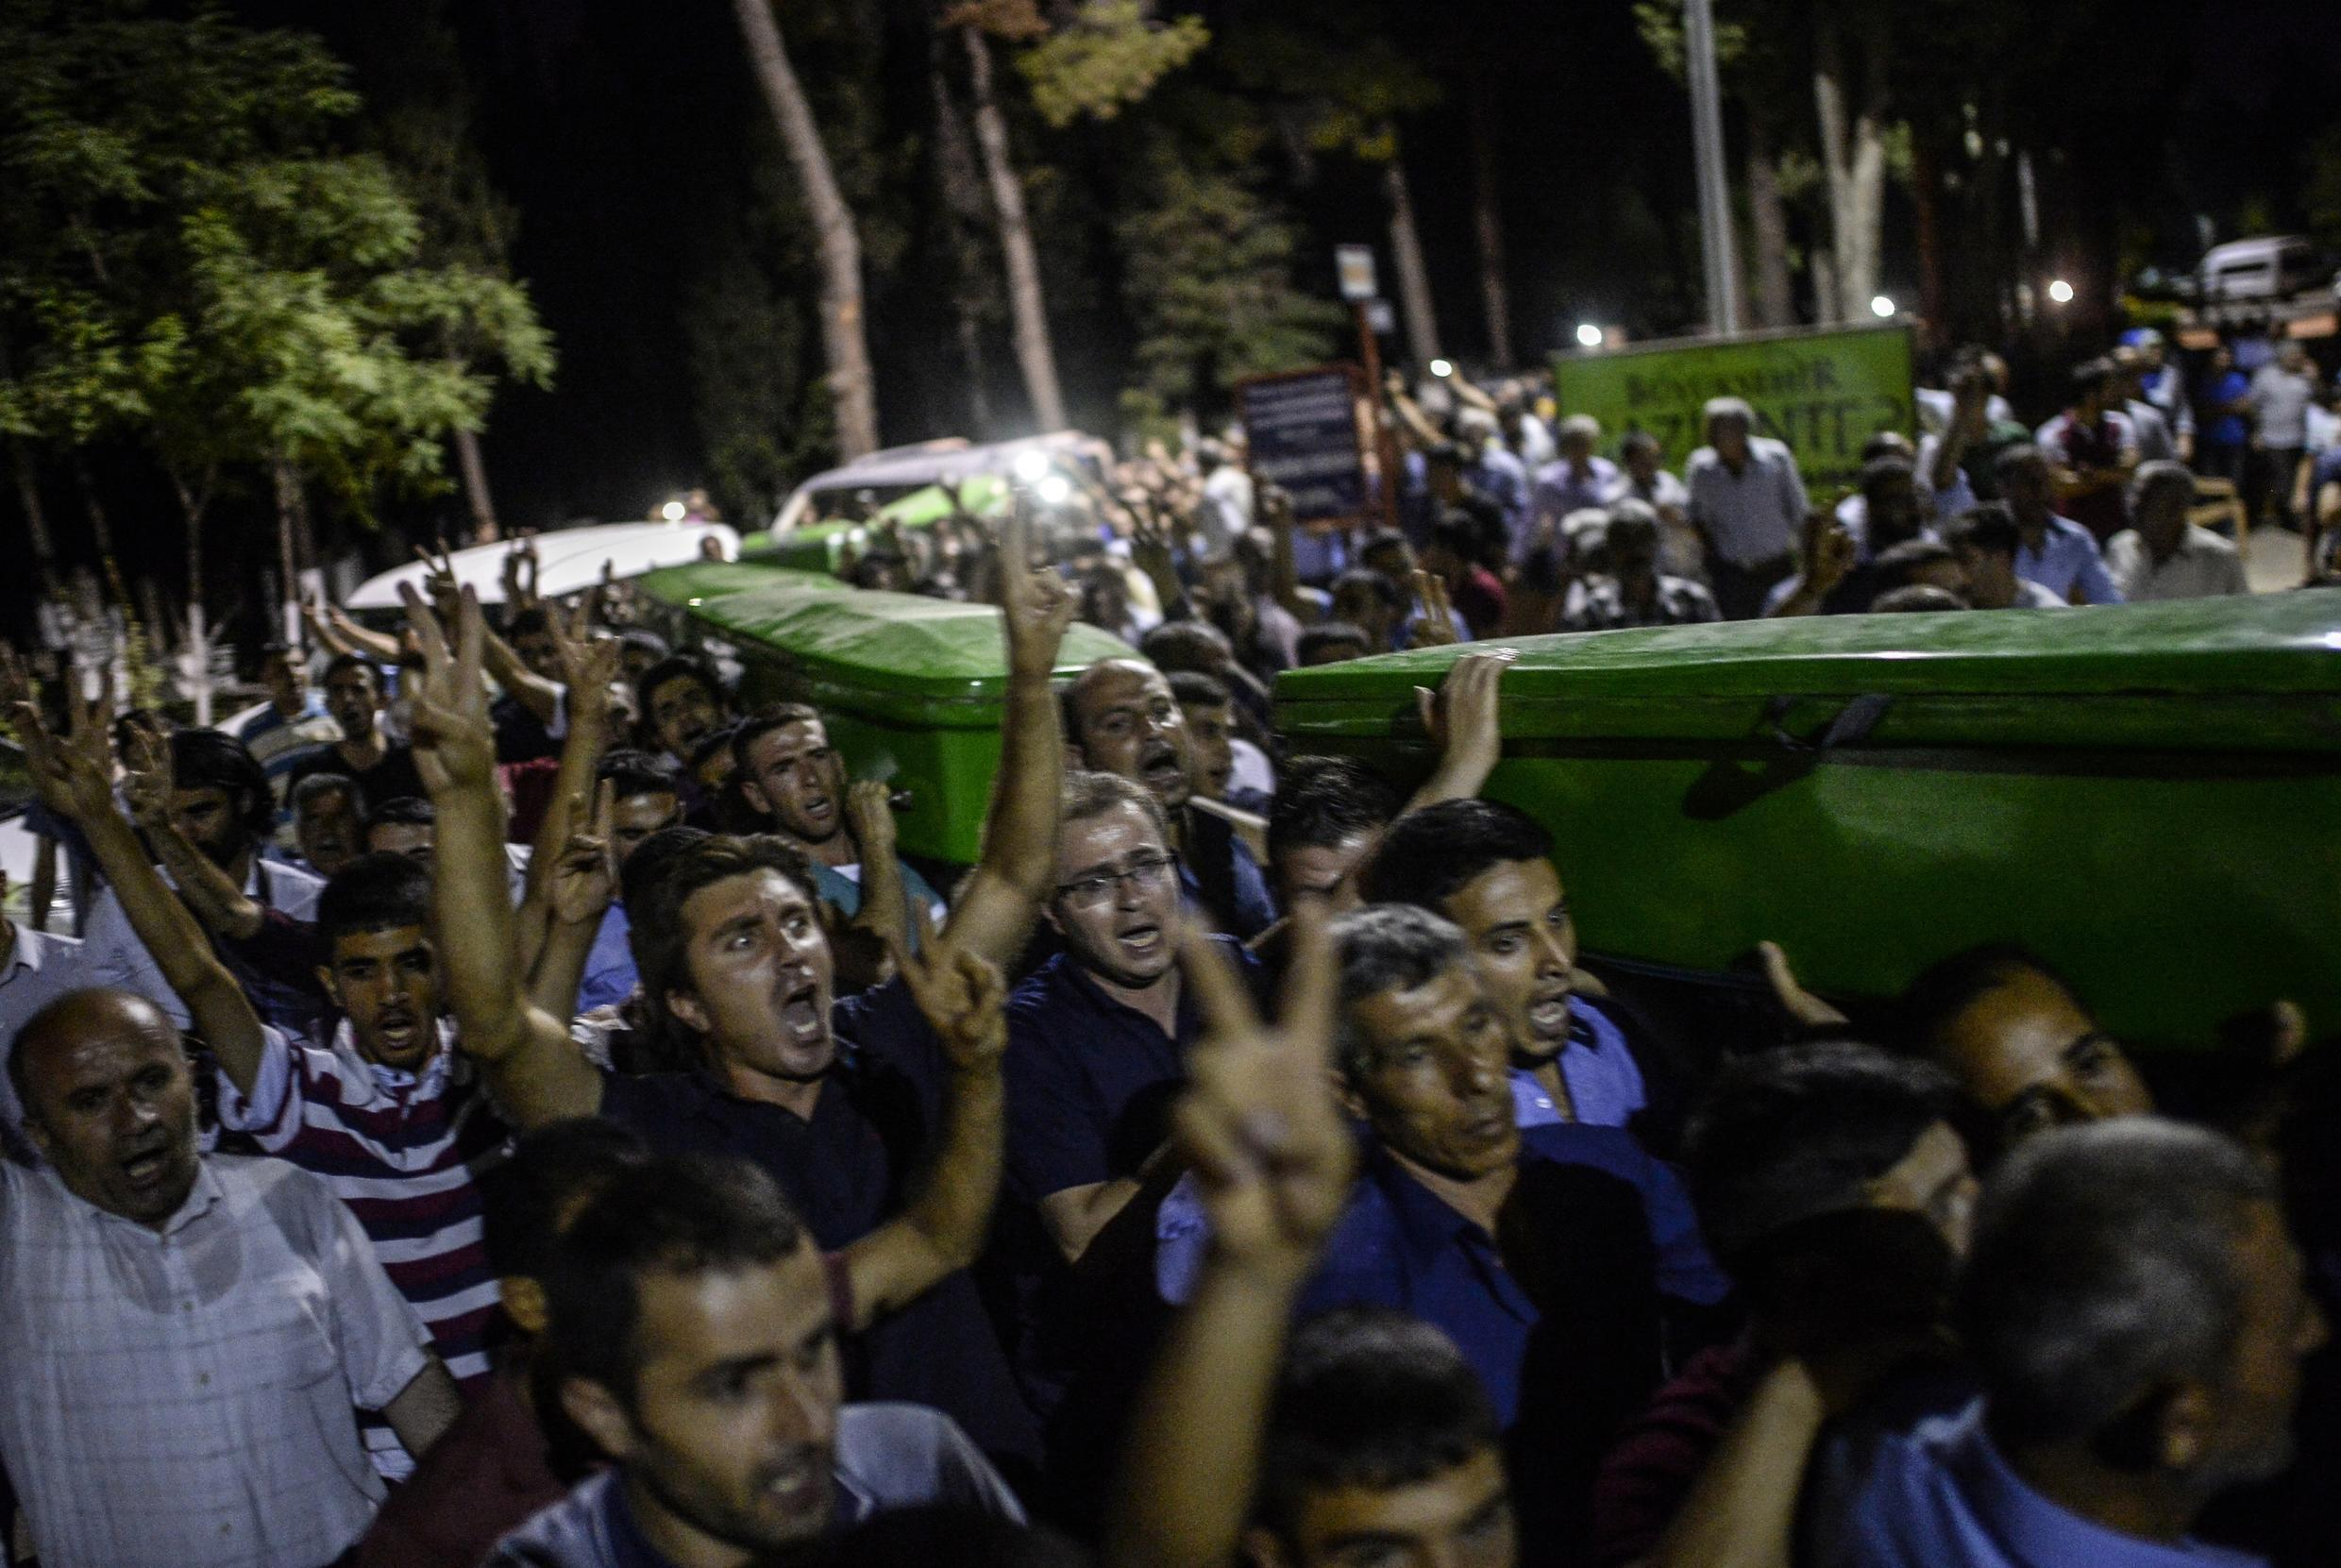 At least 32 people were killed in a suicide bomb attack in Suruc, Turkey